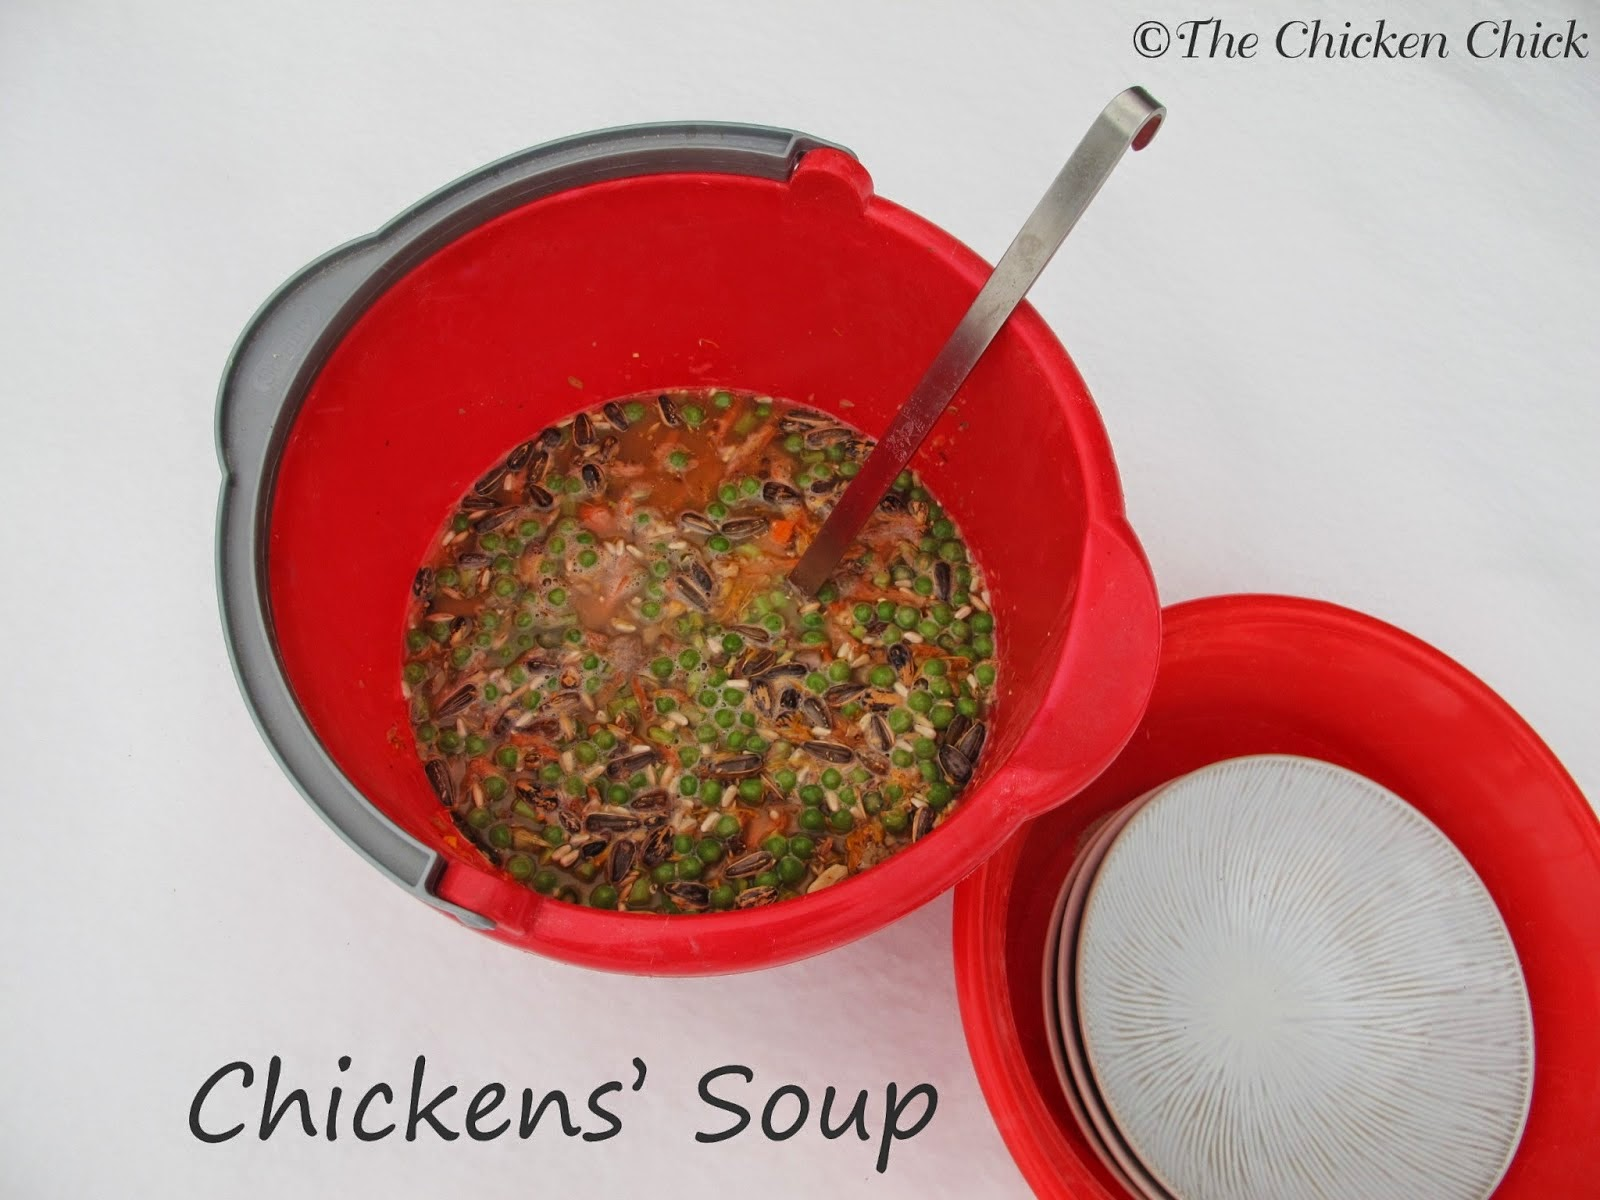 Chickens' Soup